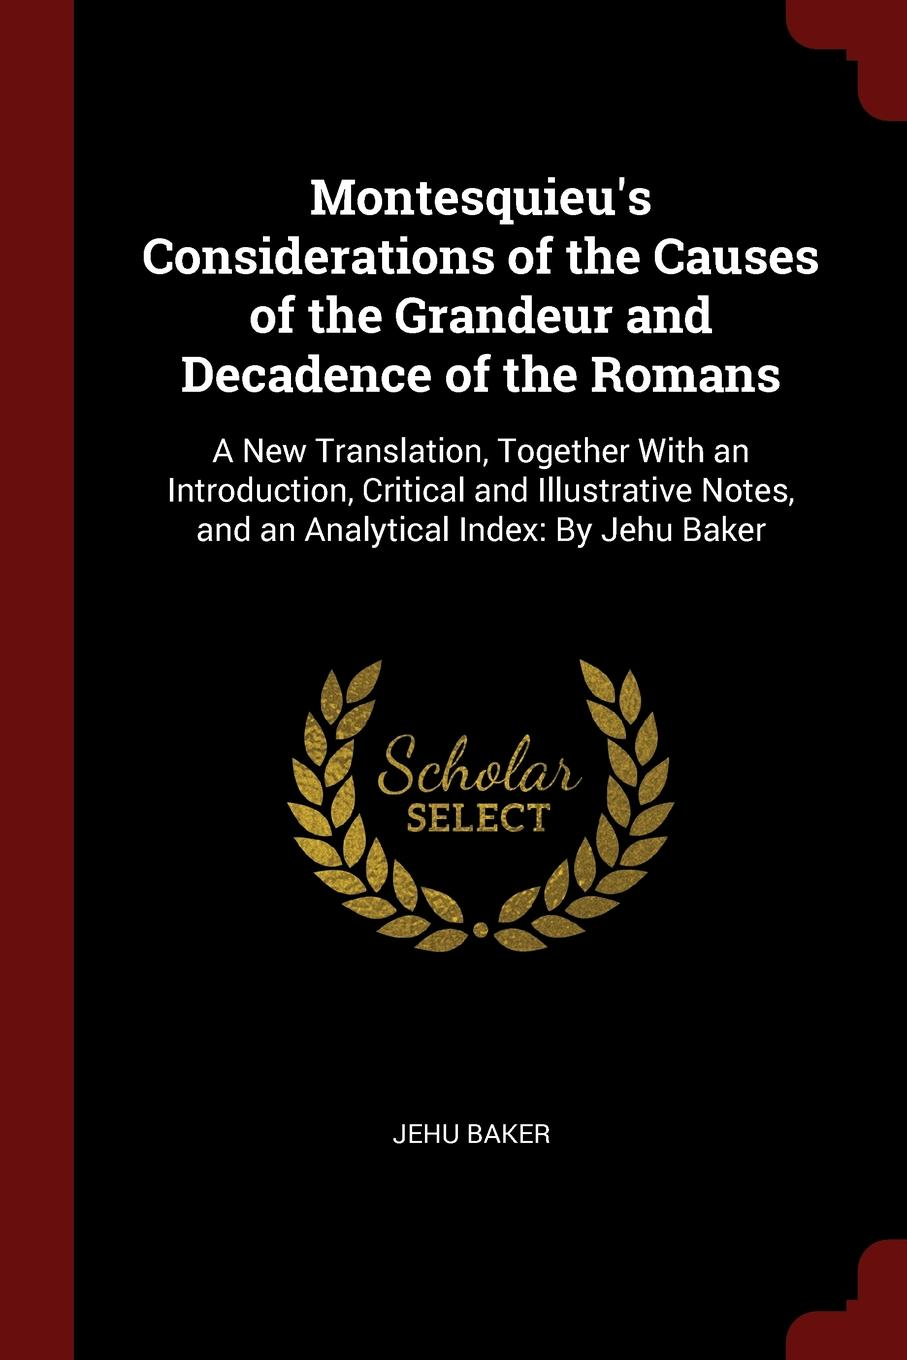 Montesquieu.s Considerations of the Causes of the Grandeur and Decadence of the Romans. A New Translation, Together With an Introduction, Critical and Illustrative Notes, and an Analytical Index: By Jehu Baker. Jehu Baker